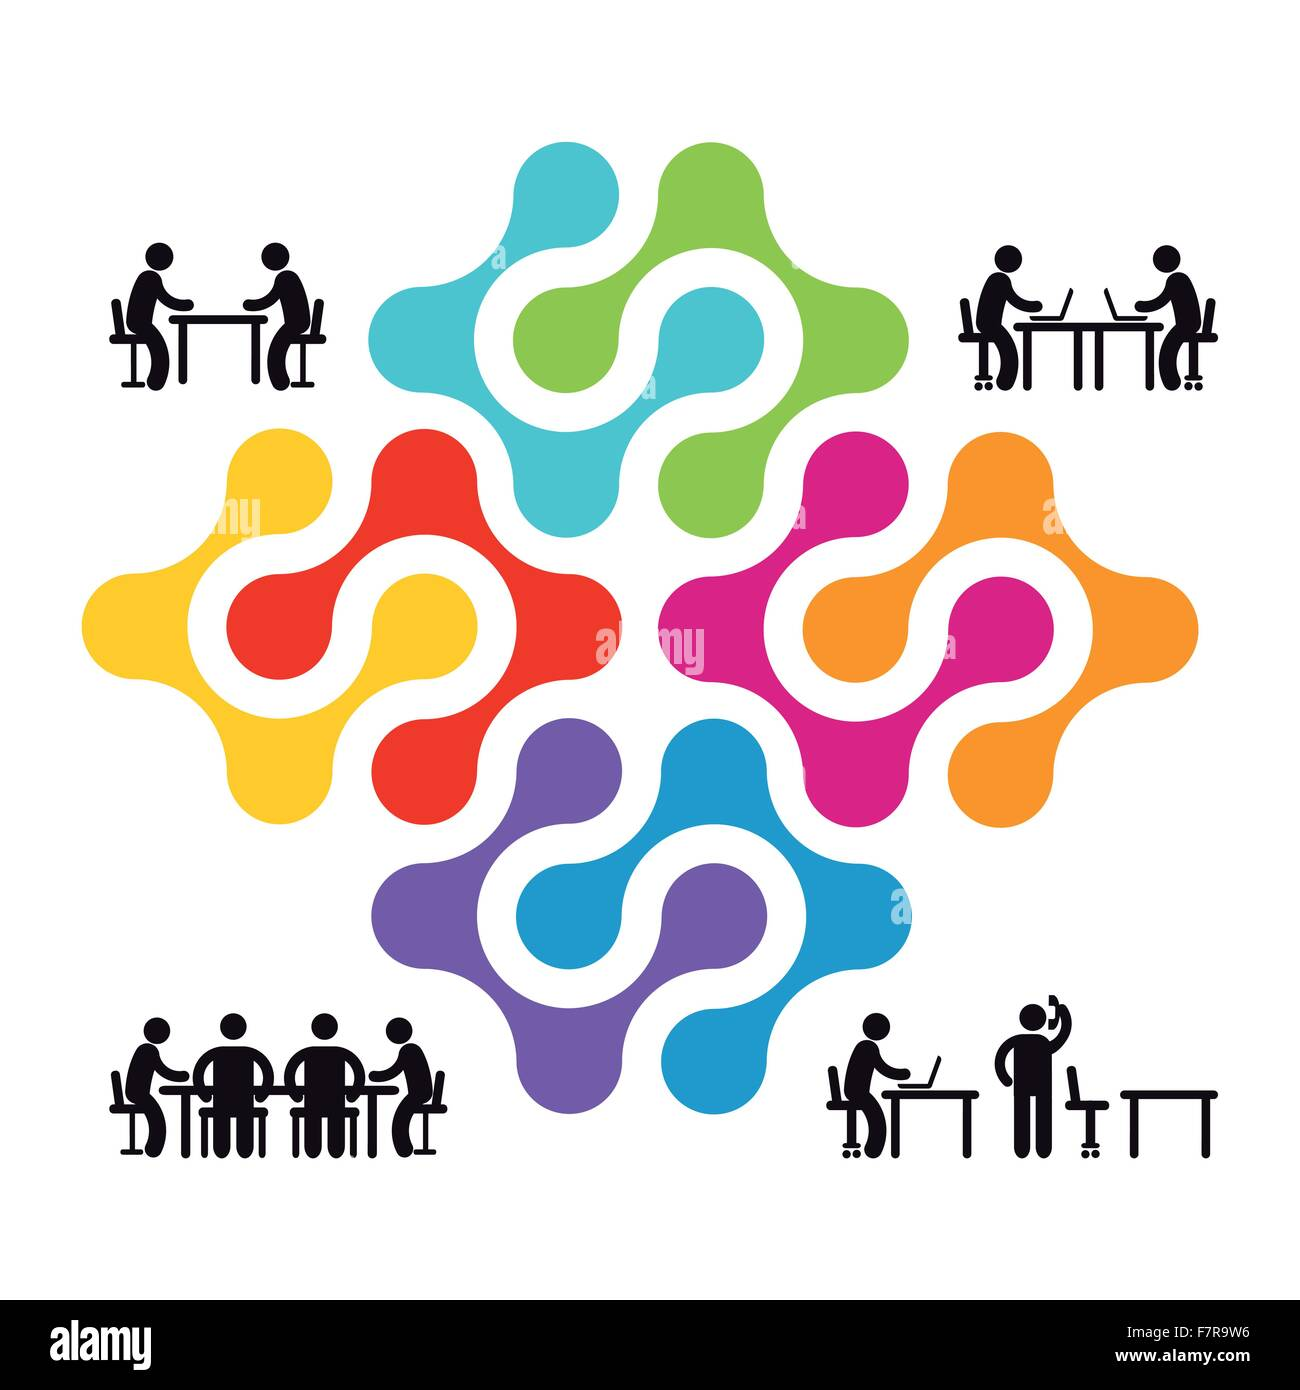 Cooperation and partnership - Stock Image